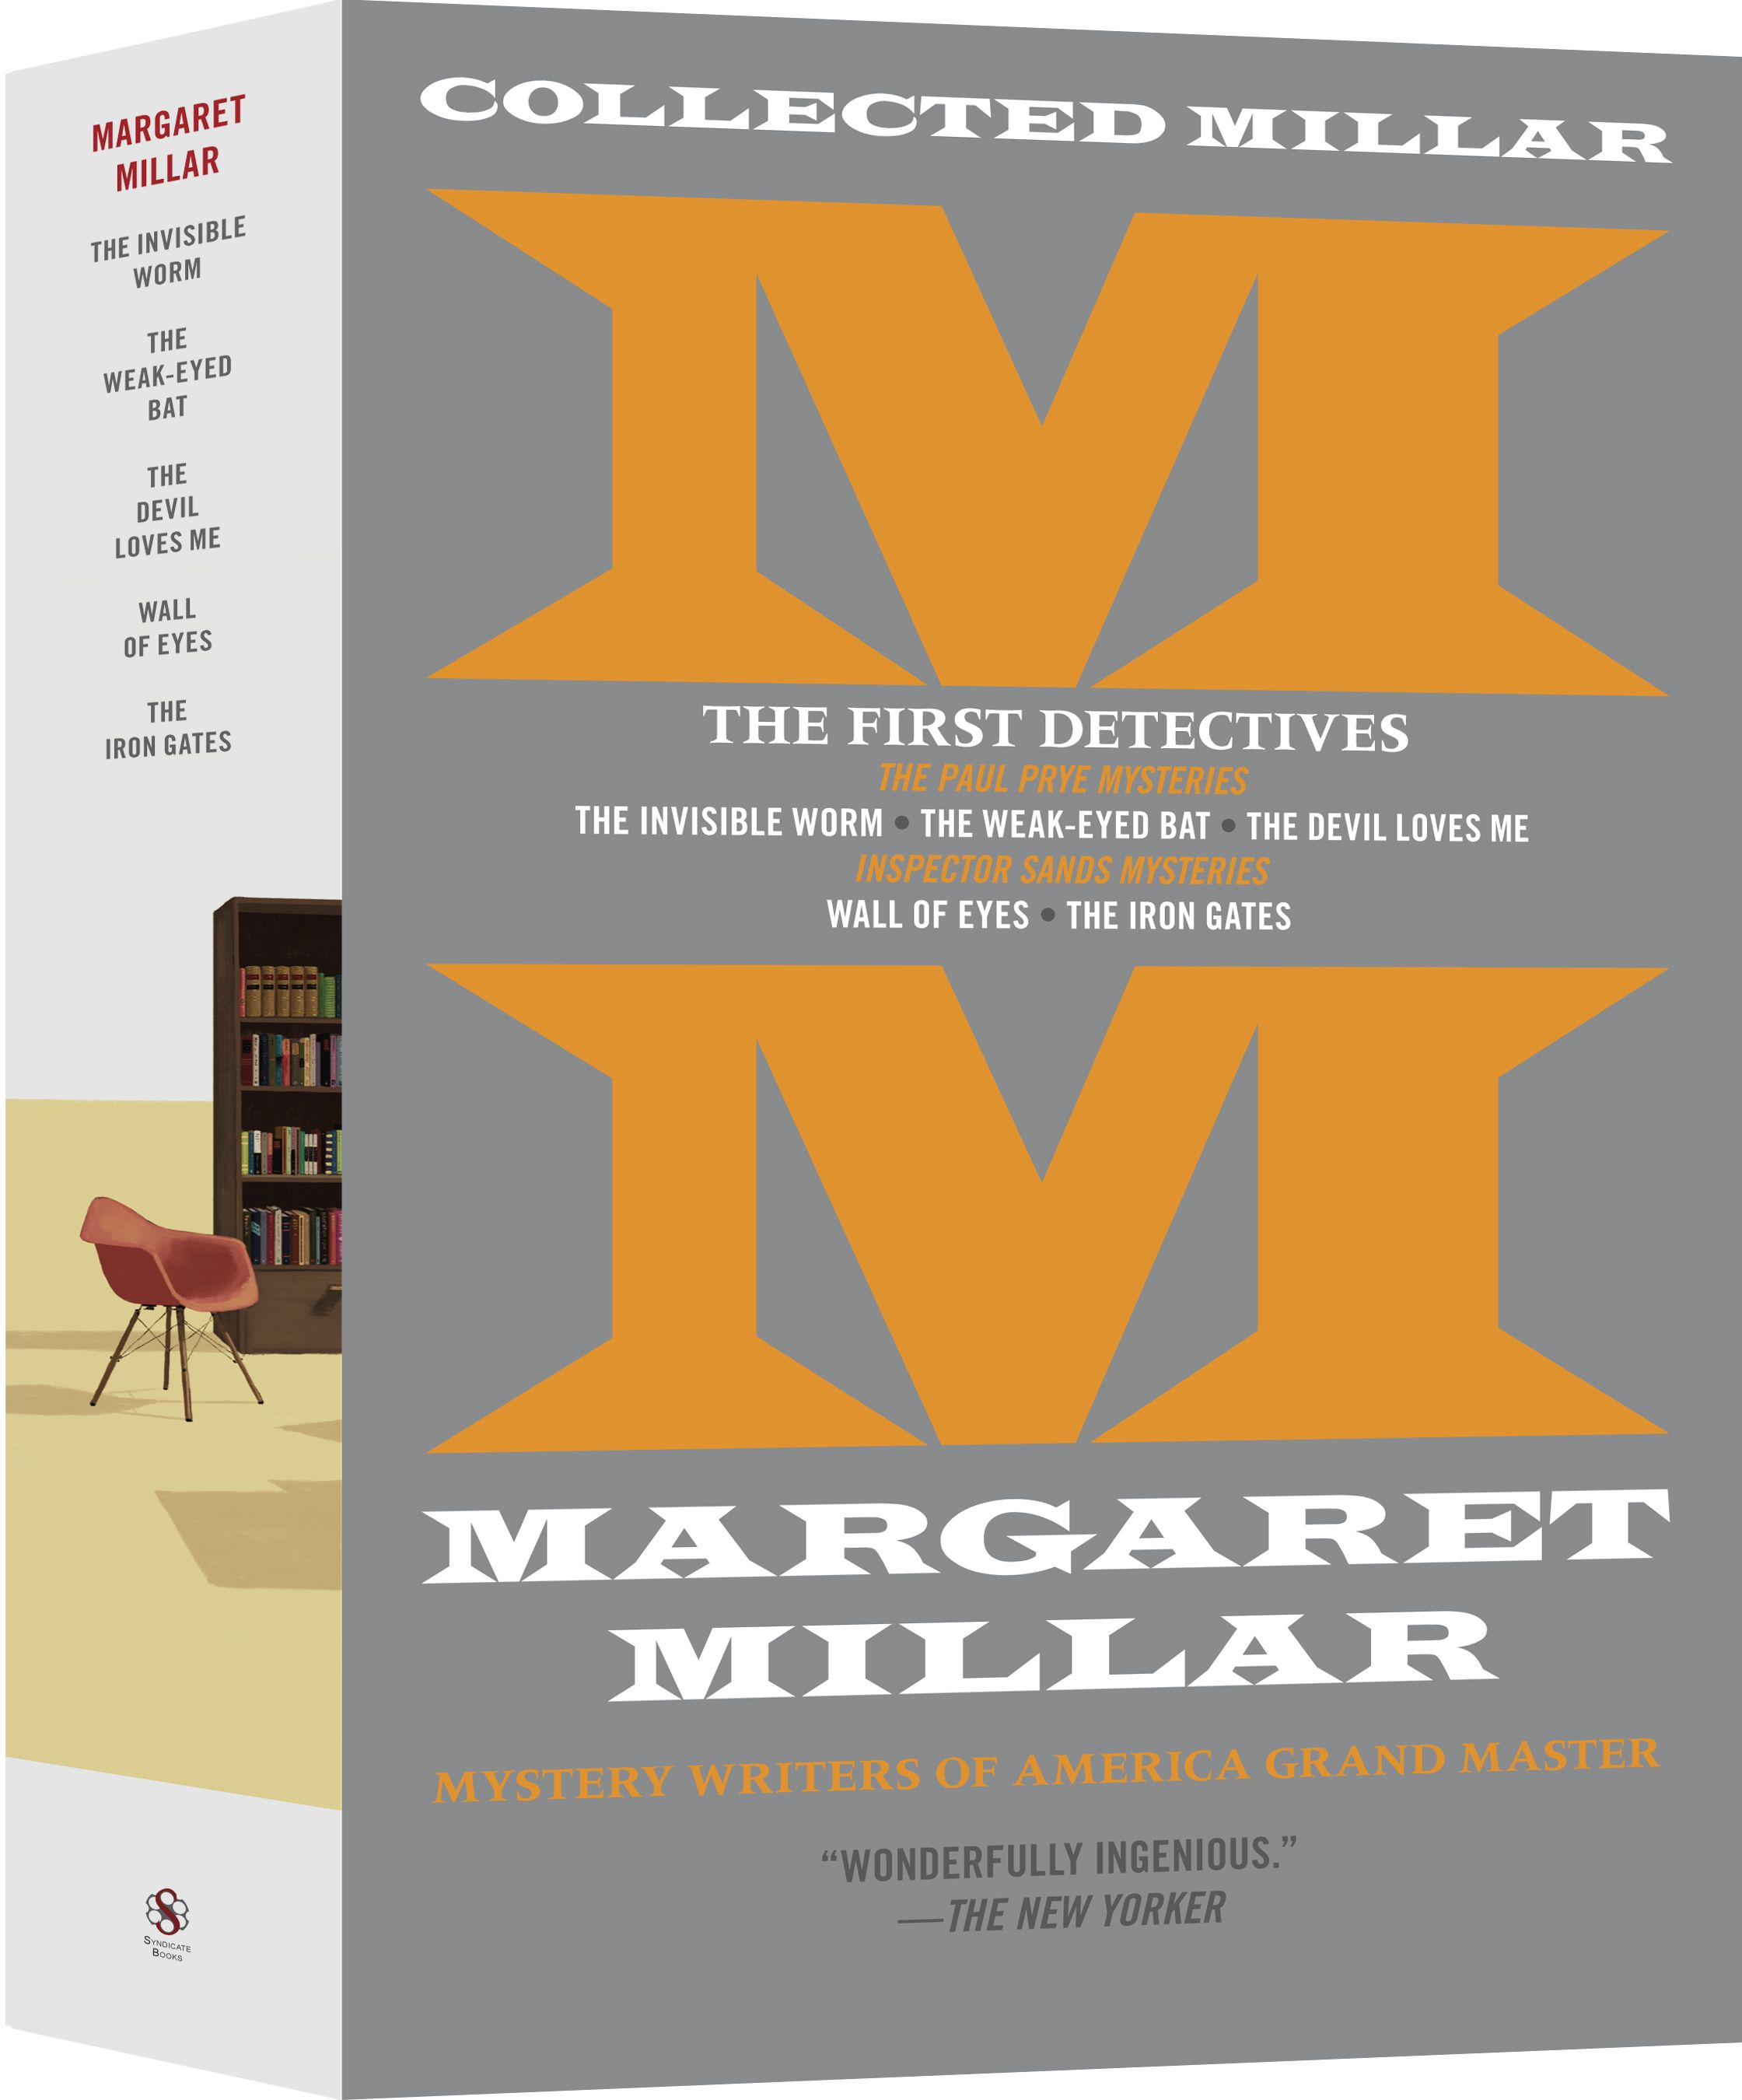 VOLUME ICollected Millar: The First Detectives - AVAILABLE NOWThe Paul Prye MysteriesThe Invisible Worm (1941)The Weak-Eyed Bat (1942)The Devil Loves Me (1942)Inspector Sands MysteriesWall of Eyes (1943)The Iron Gates (1945)